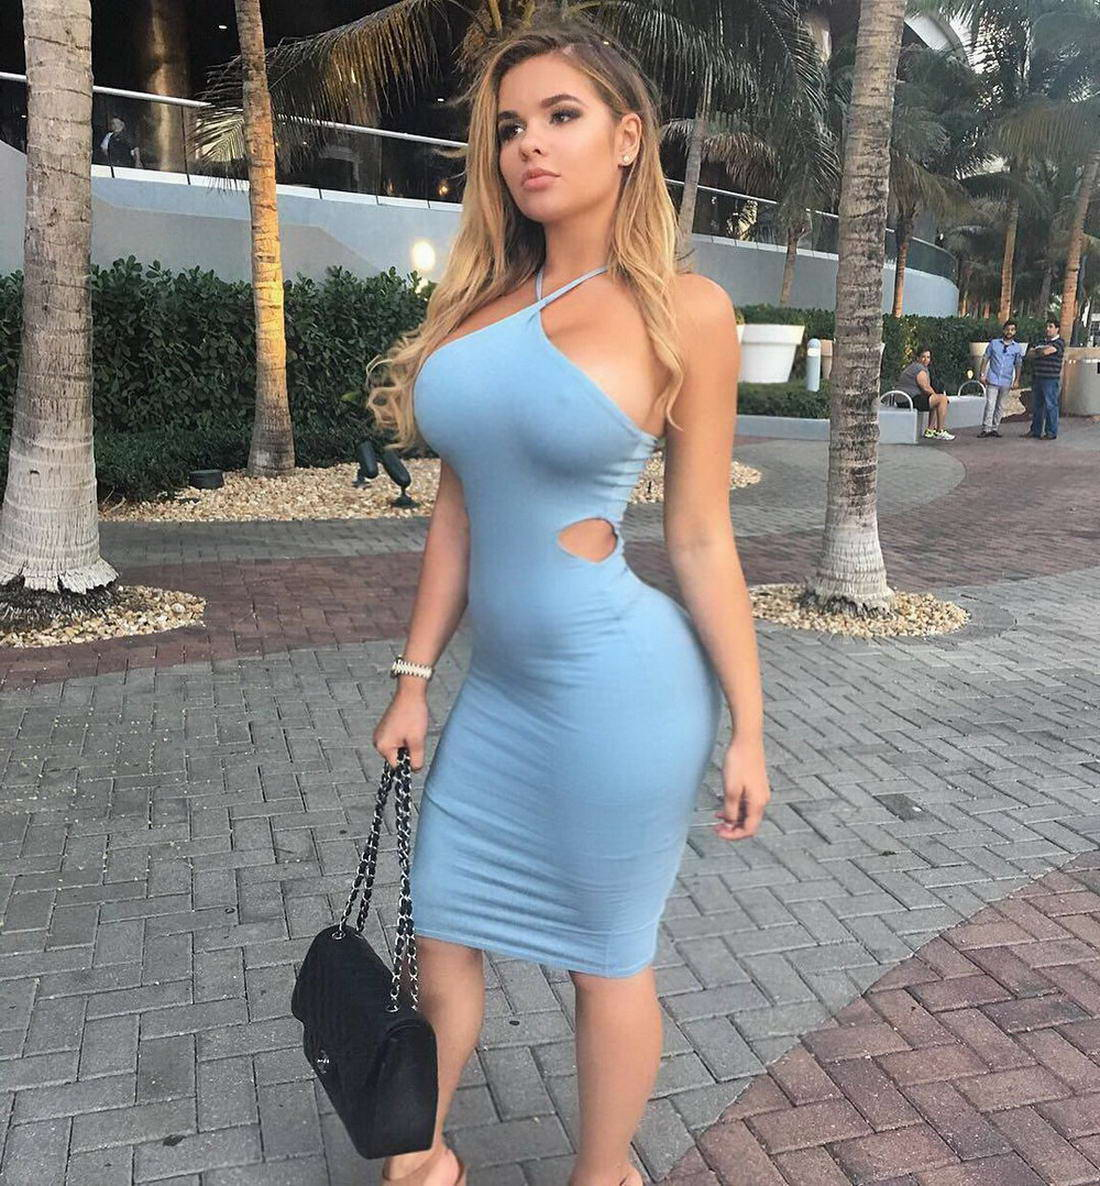 Hot Girls In Tight Dresses (40 Photos)